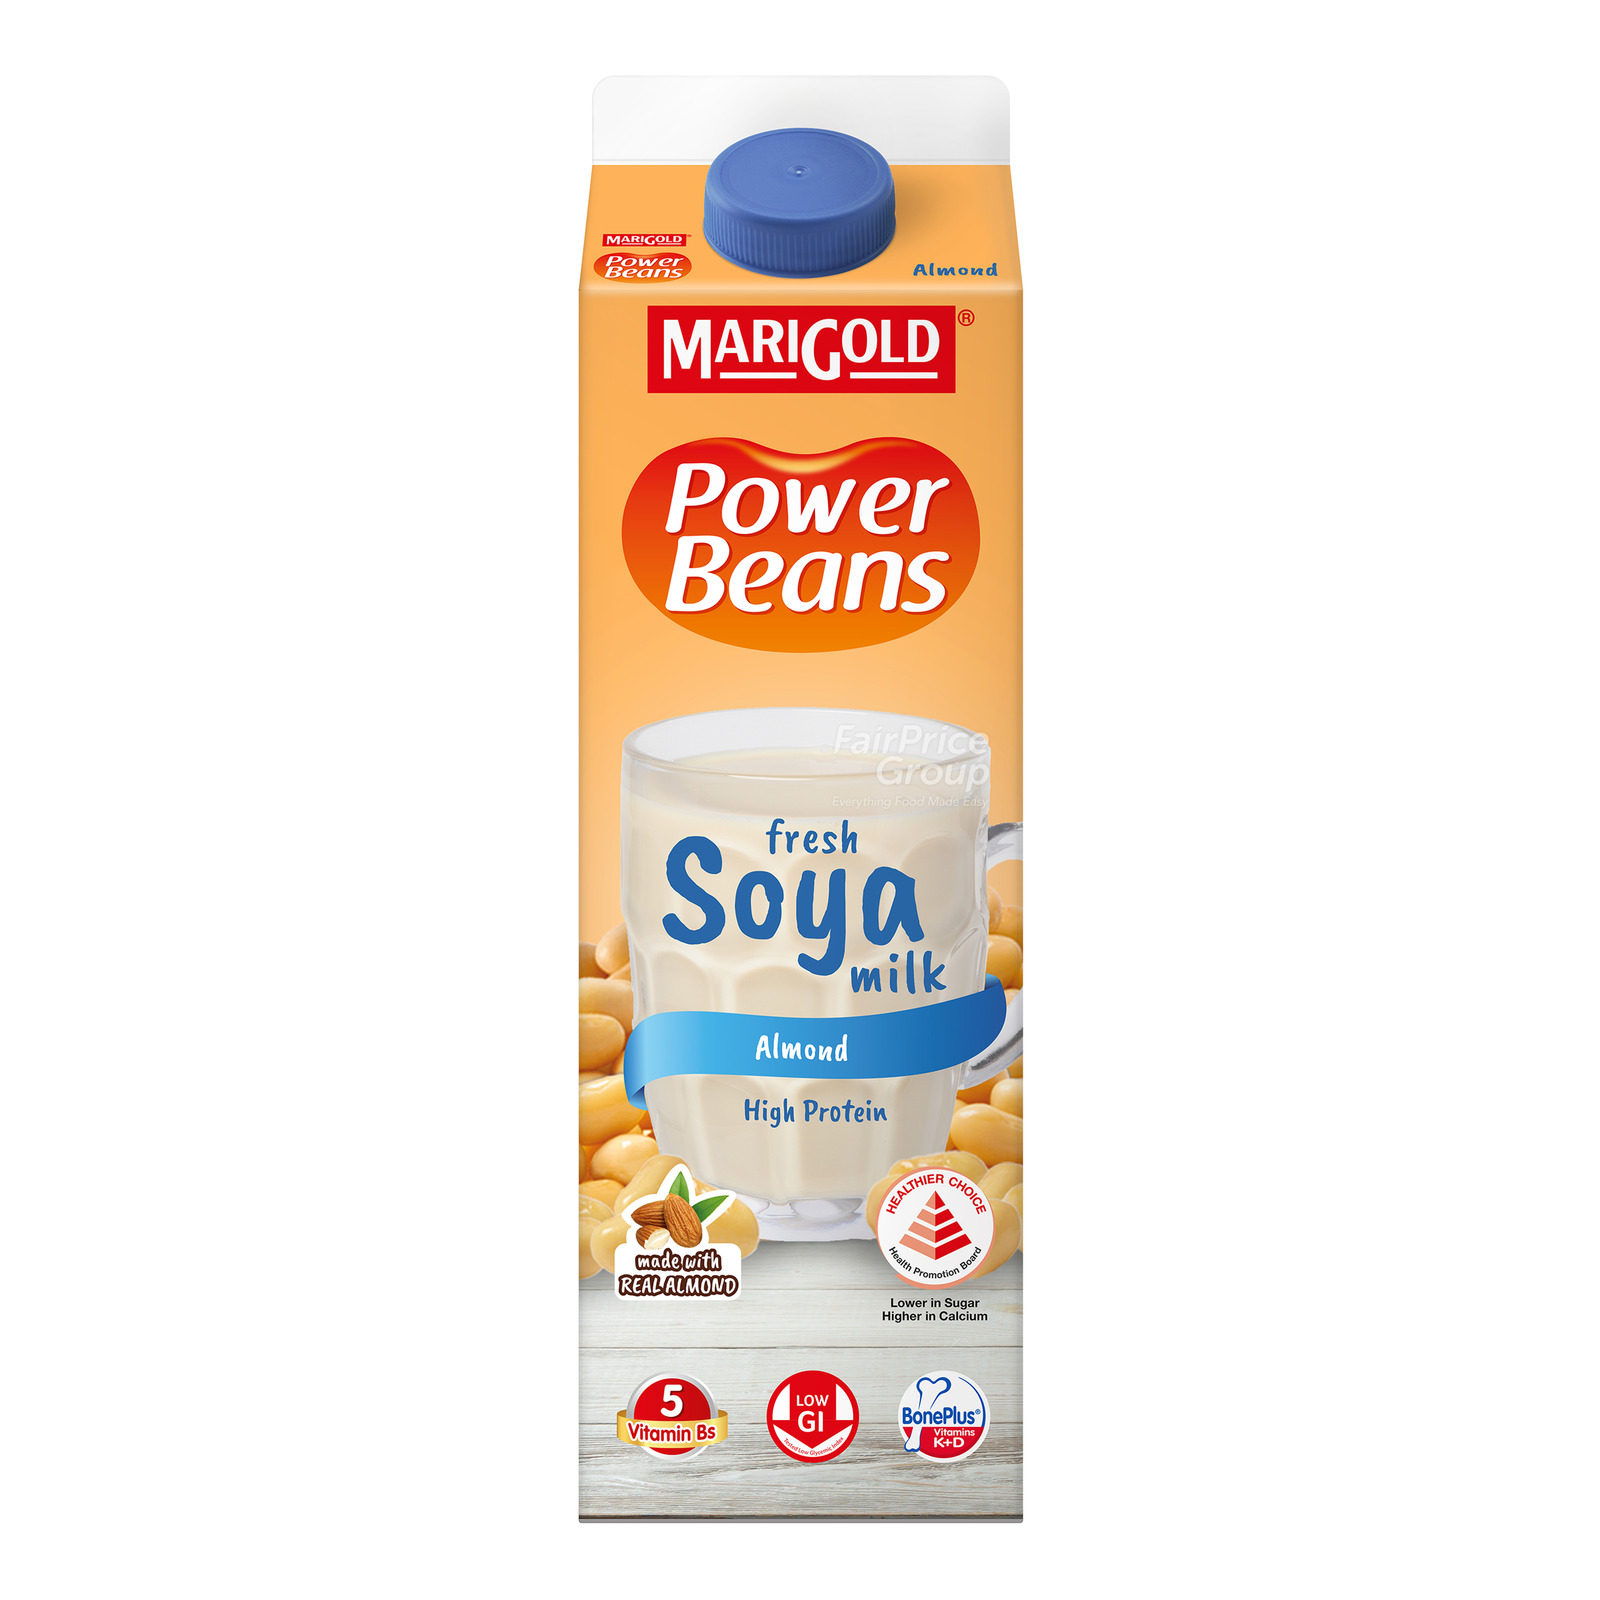 Marigold Power Beans Fresh Soya Milk - Reduced Sugar Almond